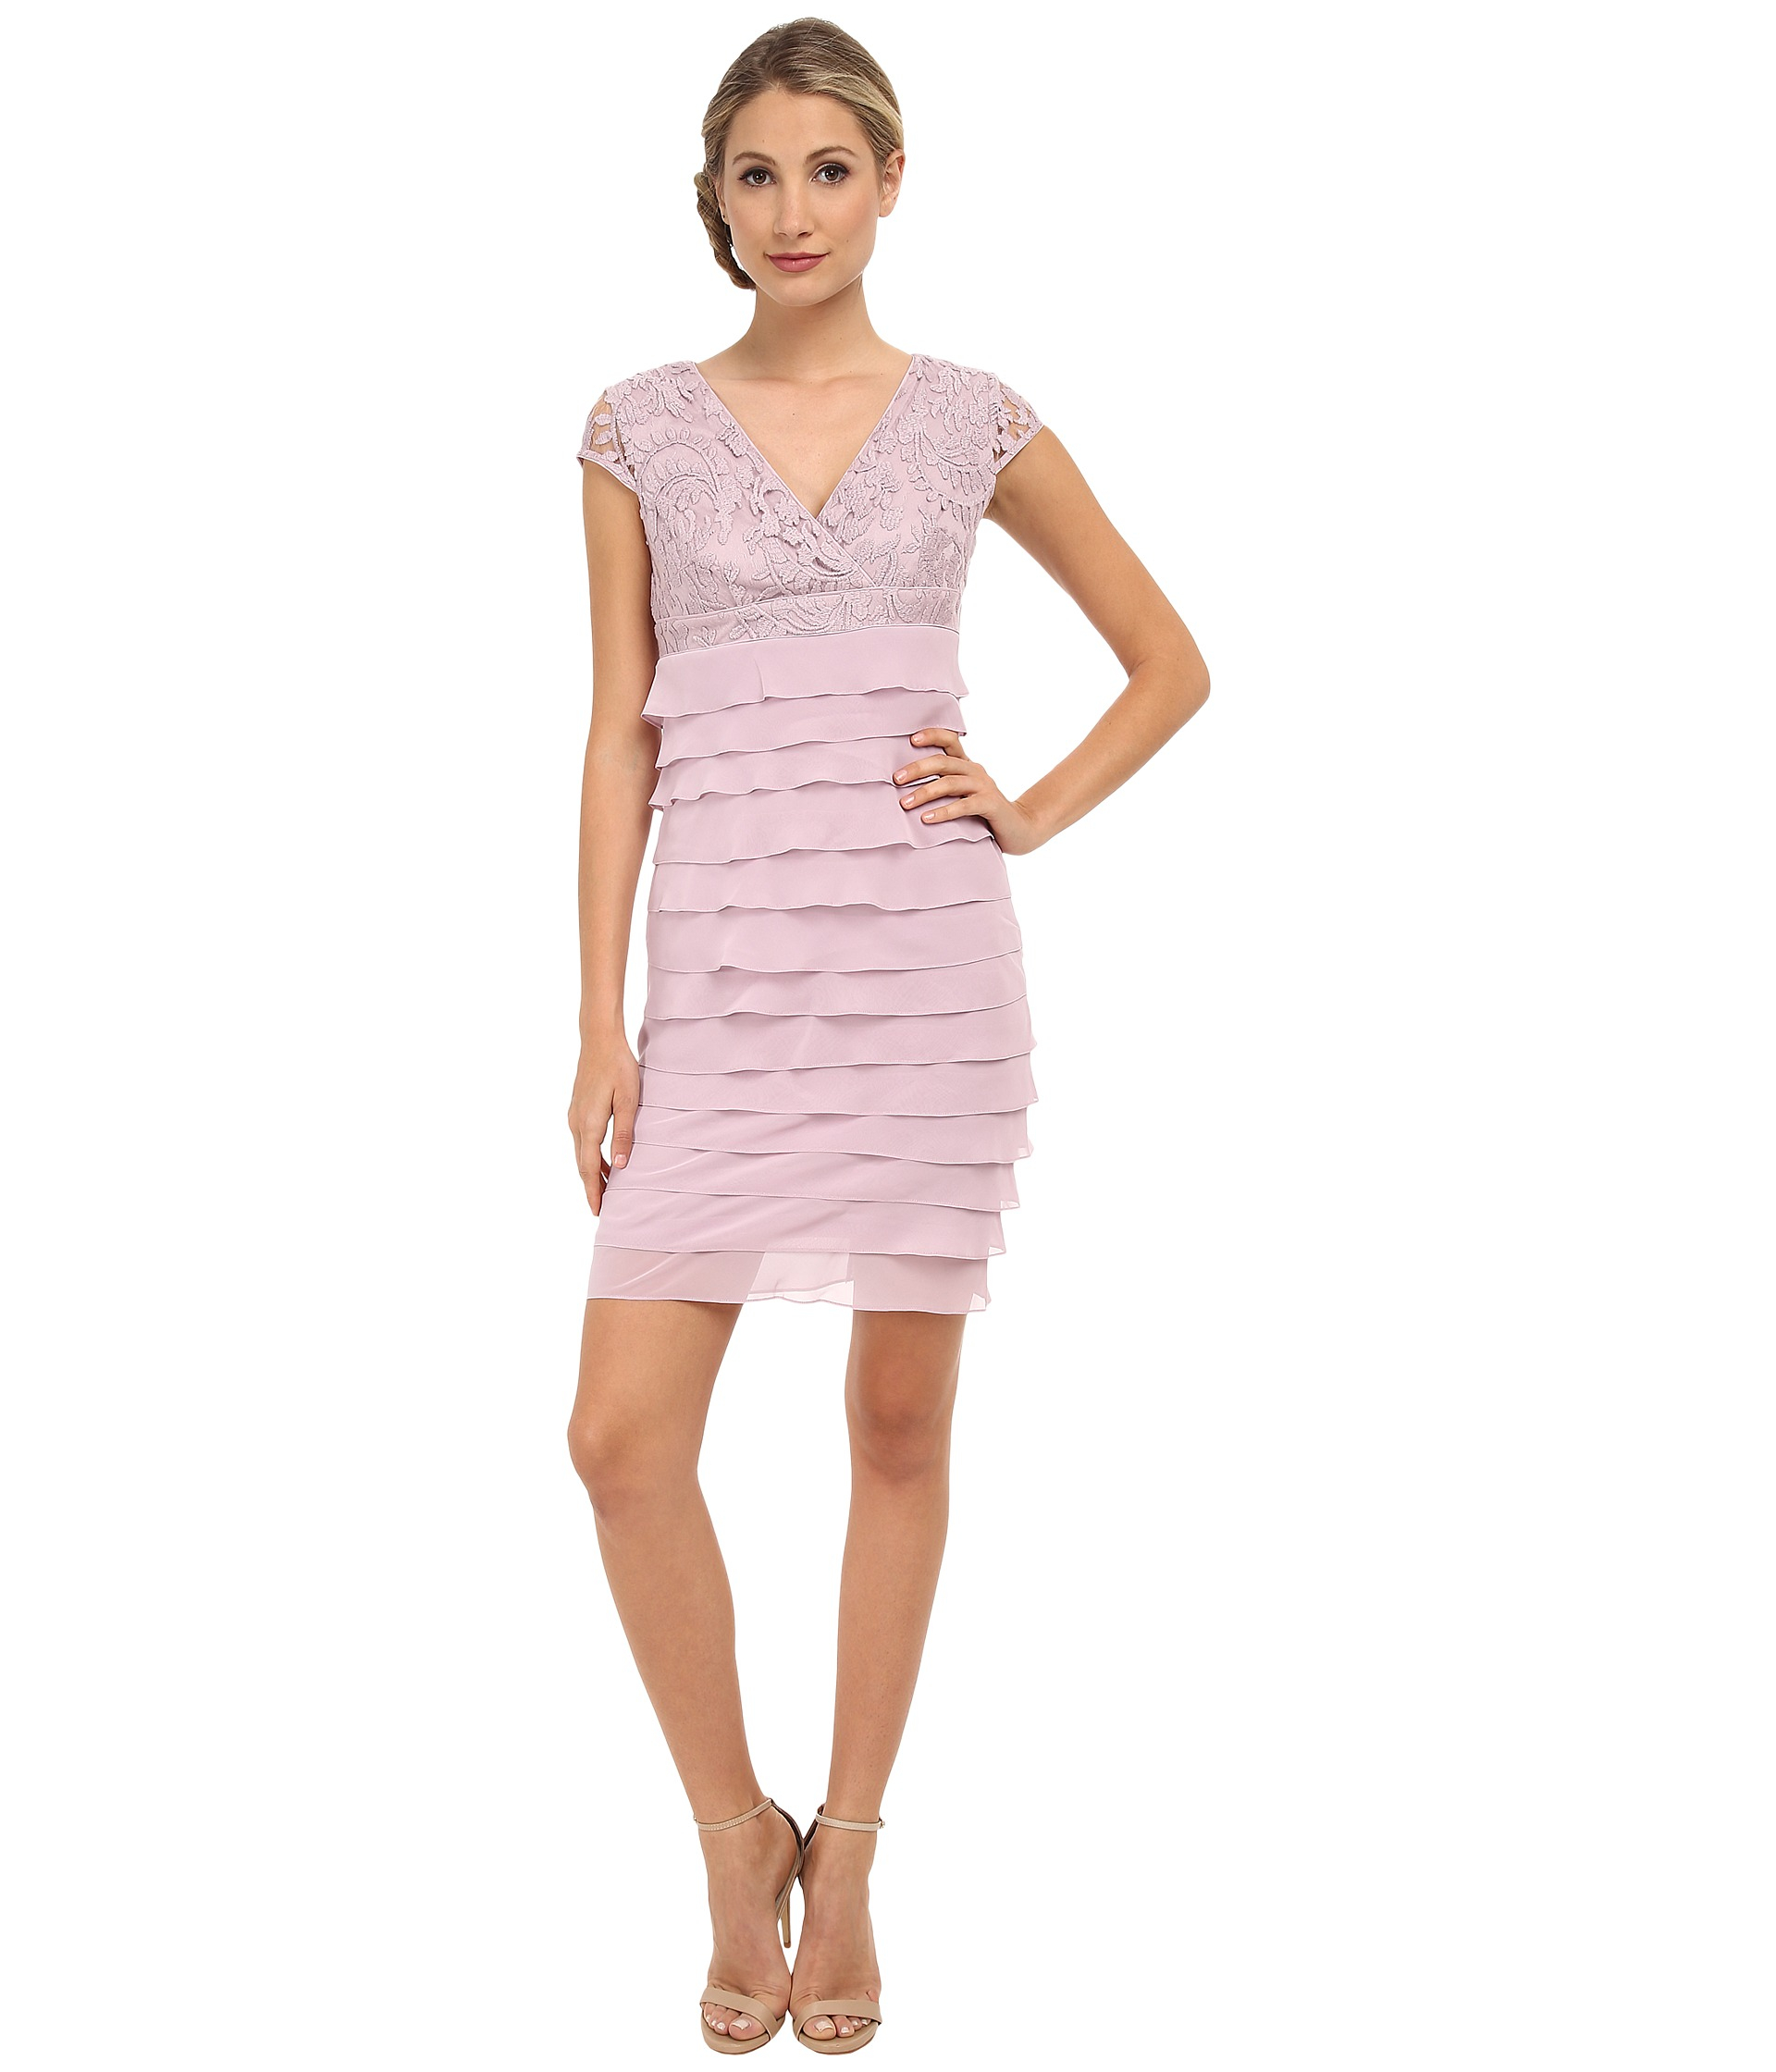 Adrianna papell Lace Surplice Top Tiered Sheath Dress in Pink | Lyst